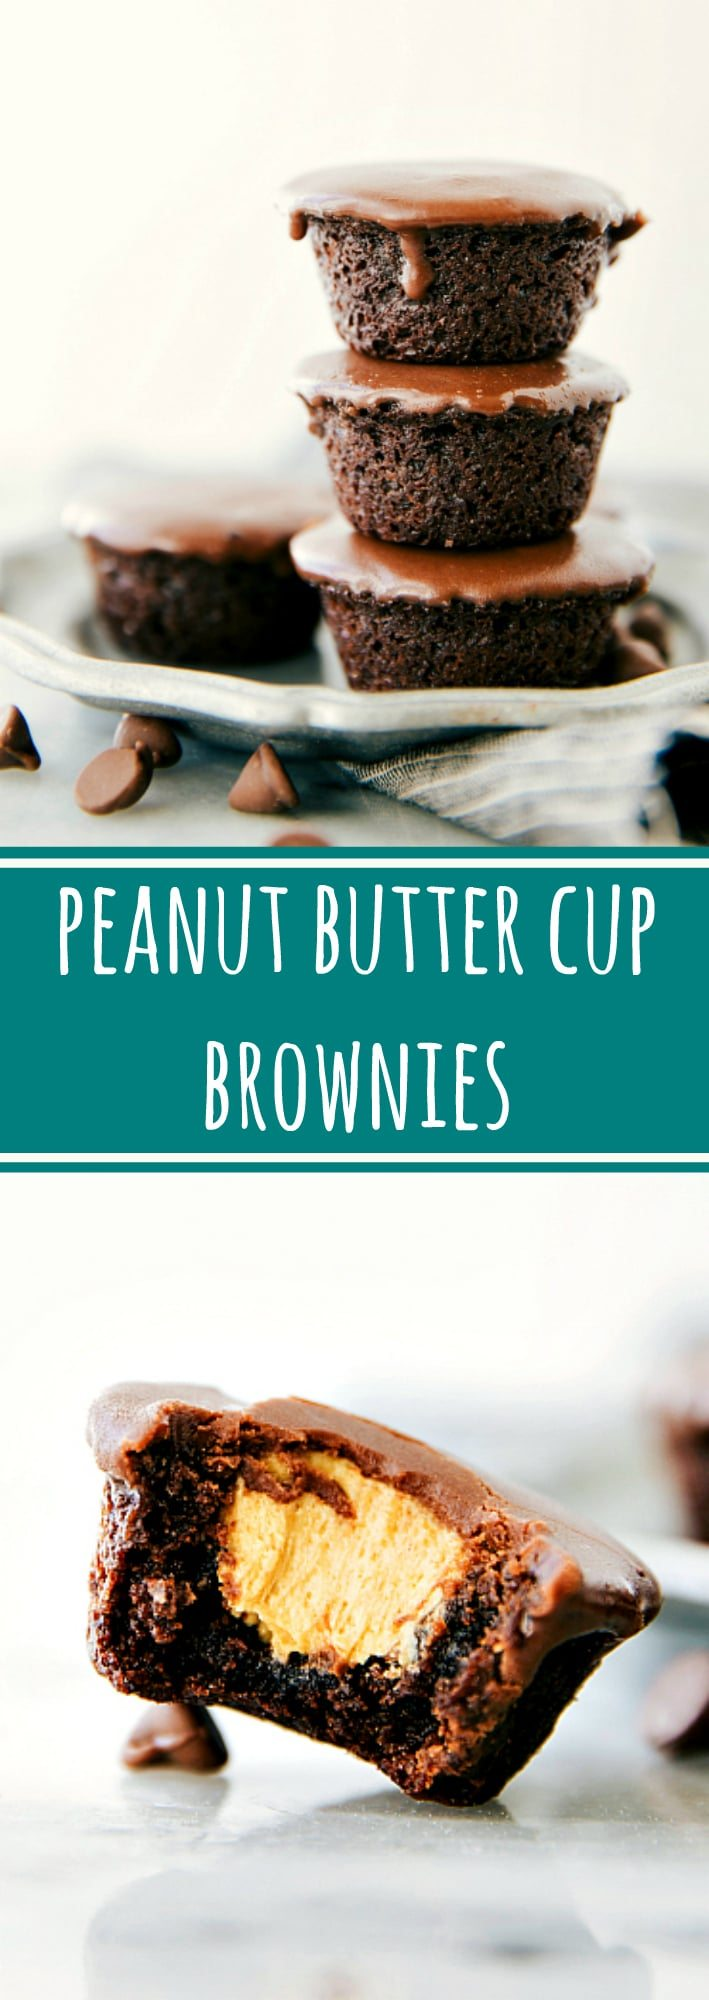 Blue apron brownies